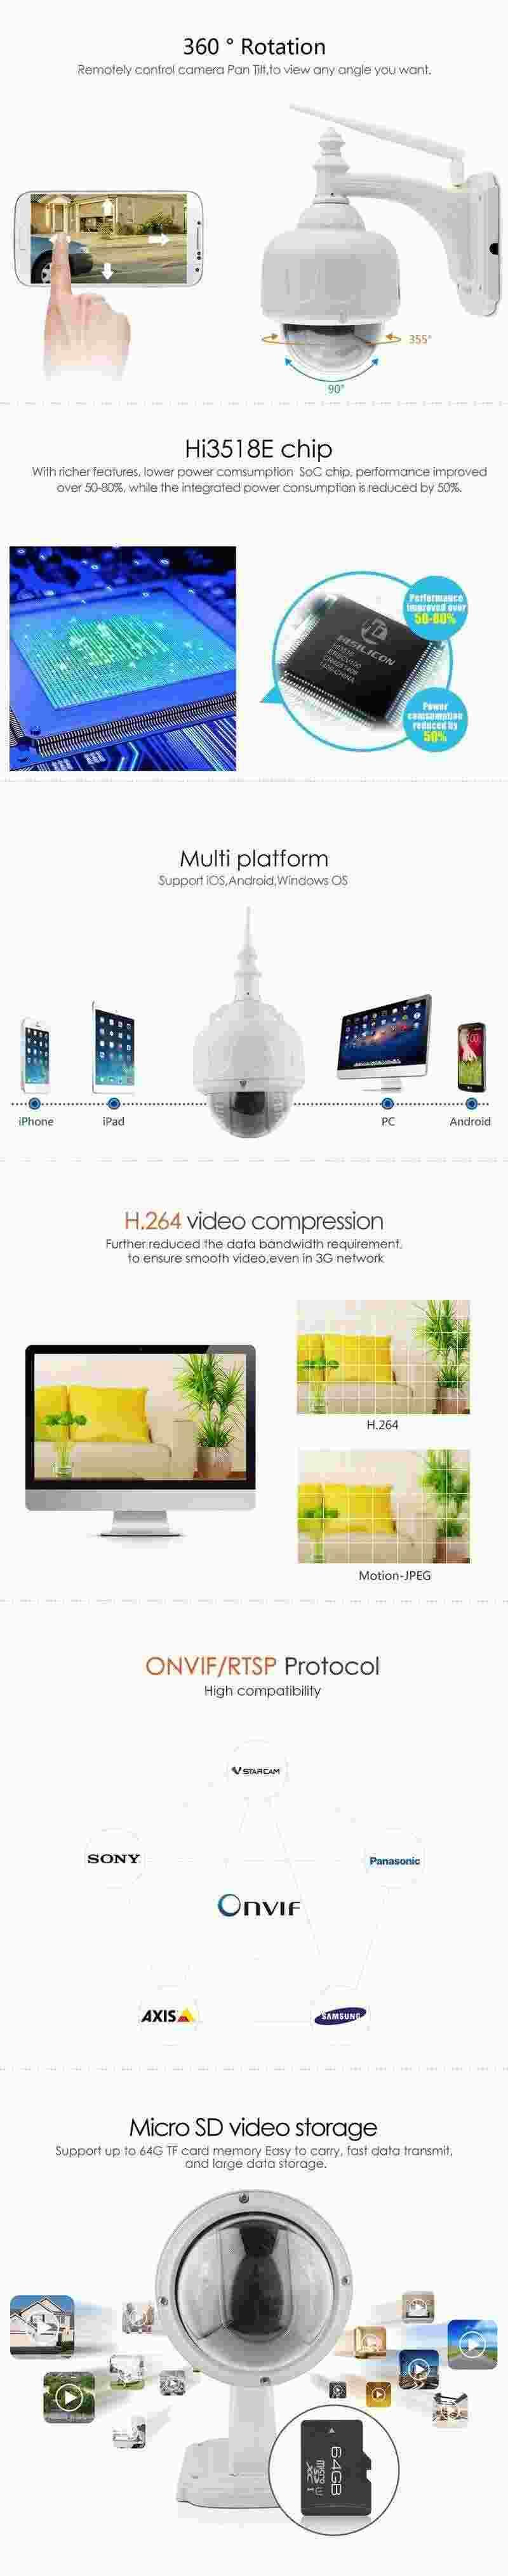 Camera De Surveillance Exterieur Sans Fil Axis C7833wip Wireless Wifi Outdoor Hd Ip Security Camera 720p Wifi Wireless Dome Pan Tilt Rstp Onvif Stream Support 128g Ann